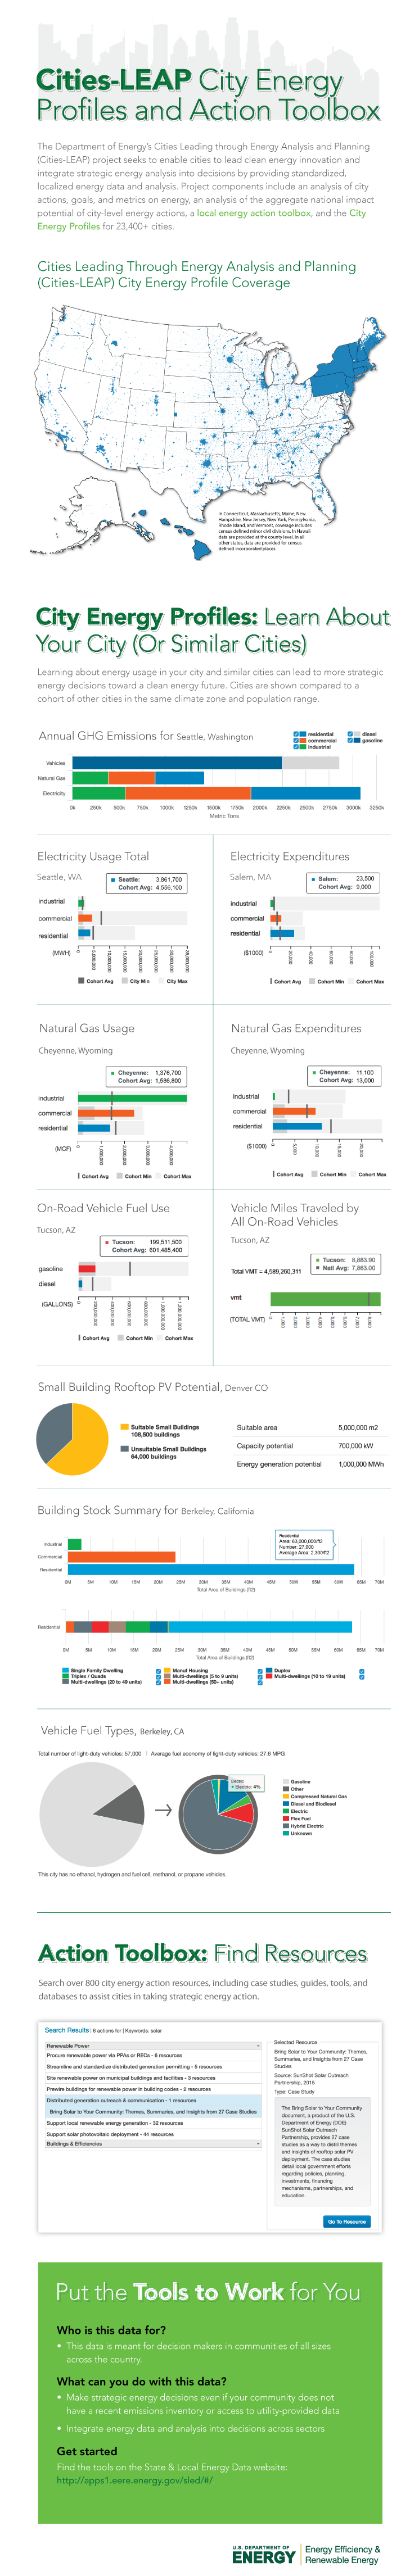 City Energy Profiles and Action Toolbox Infographic